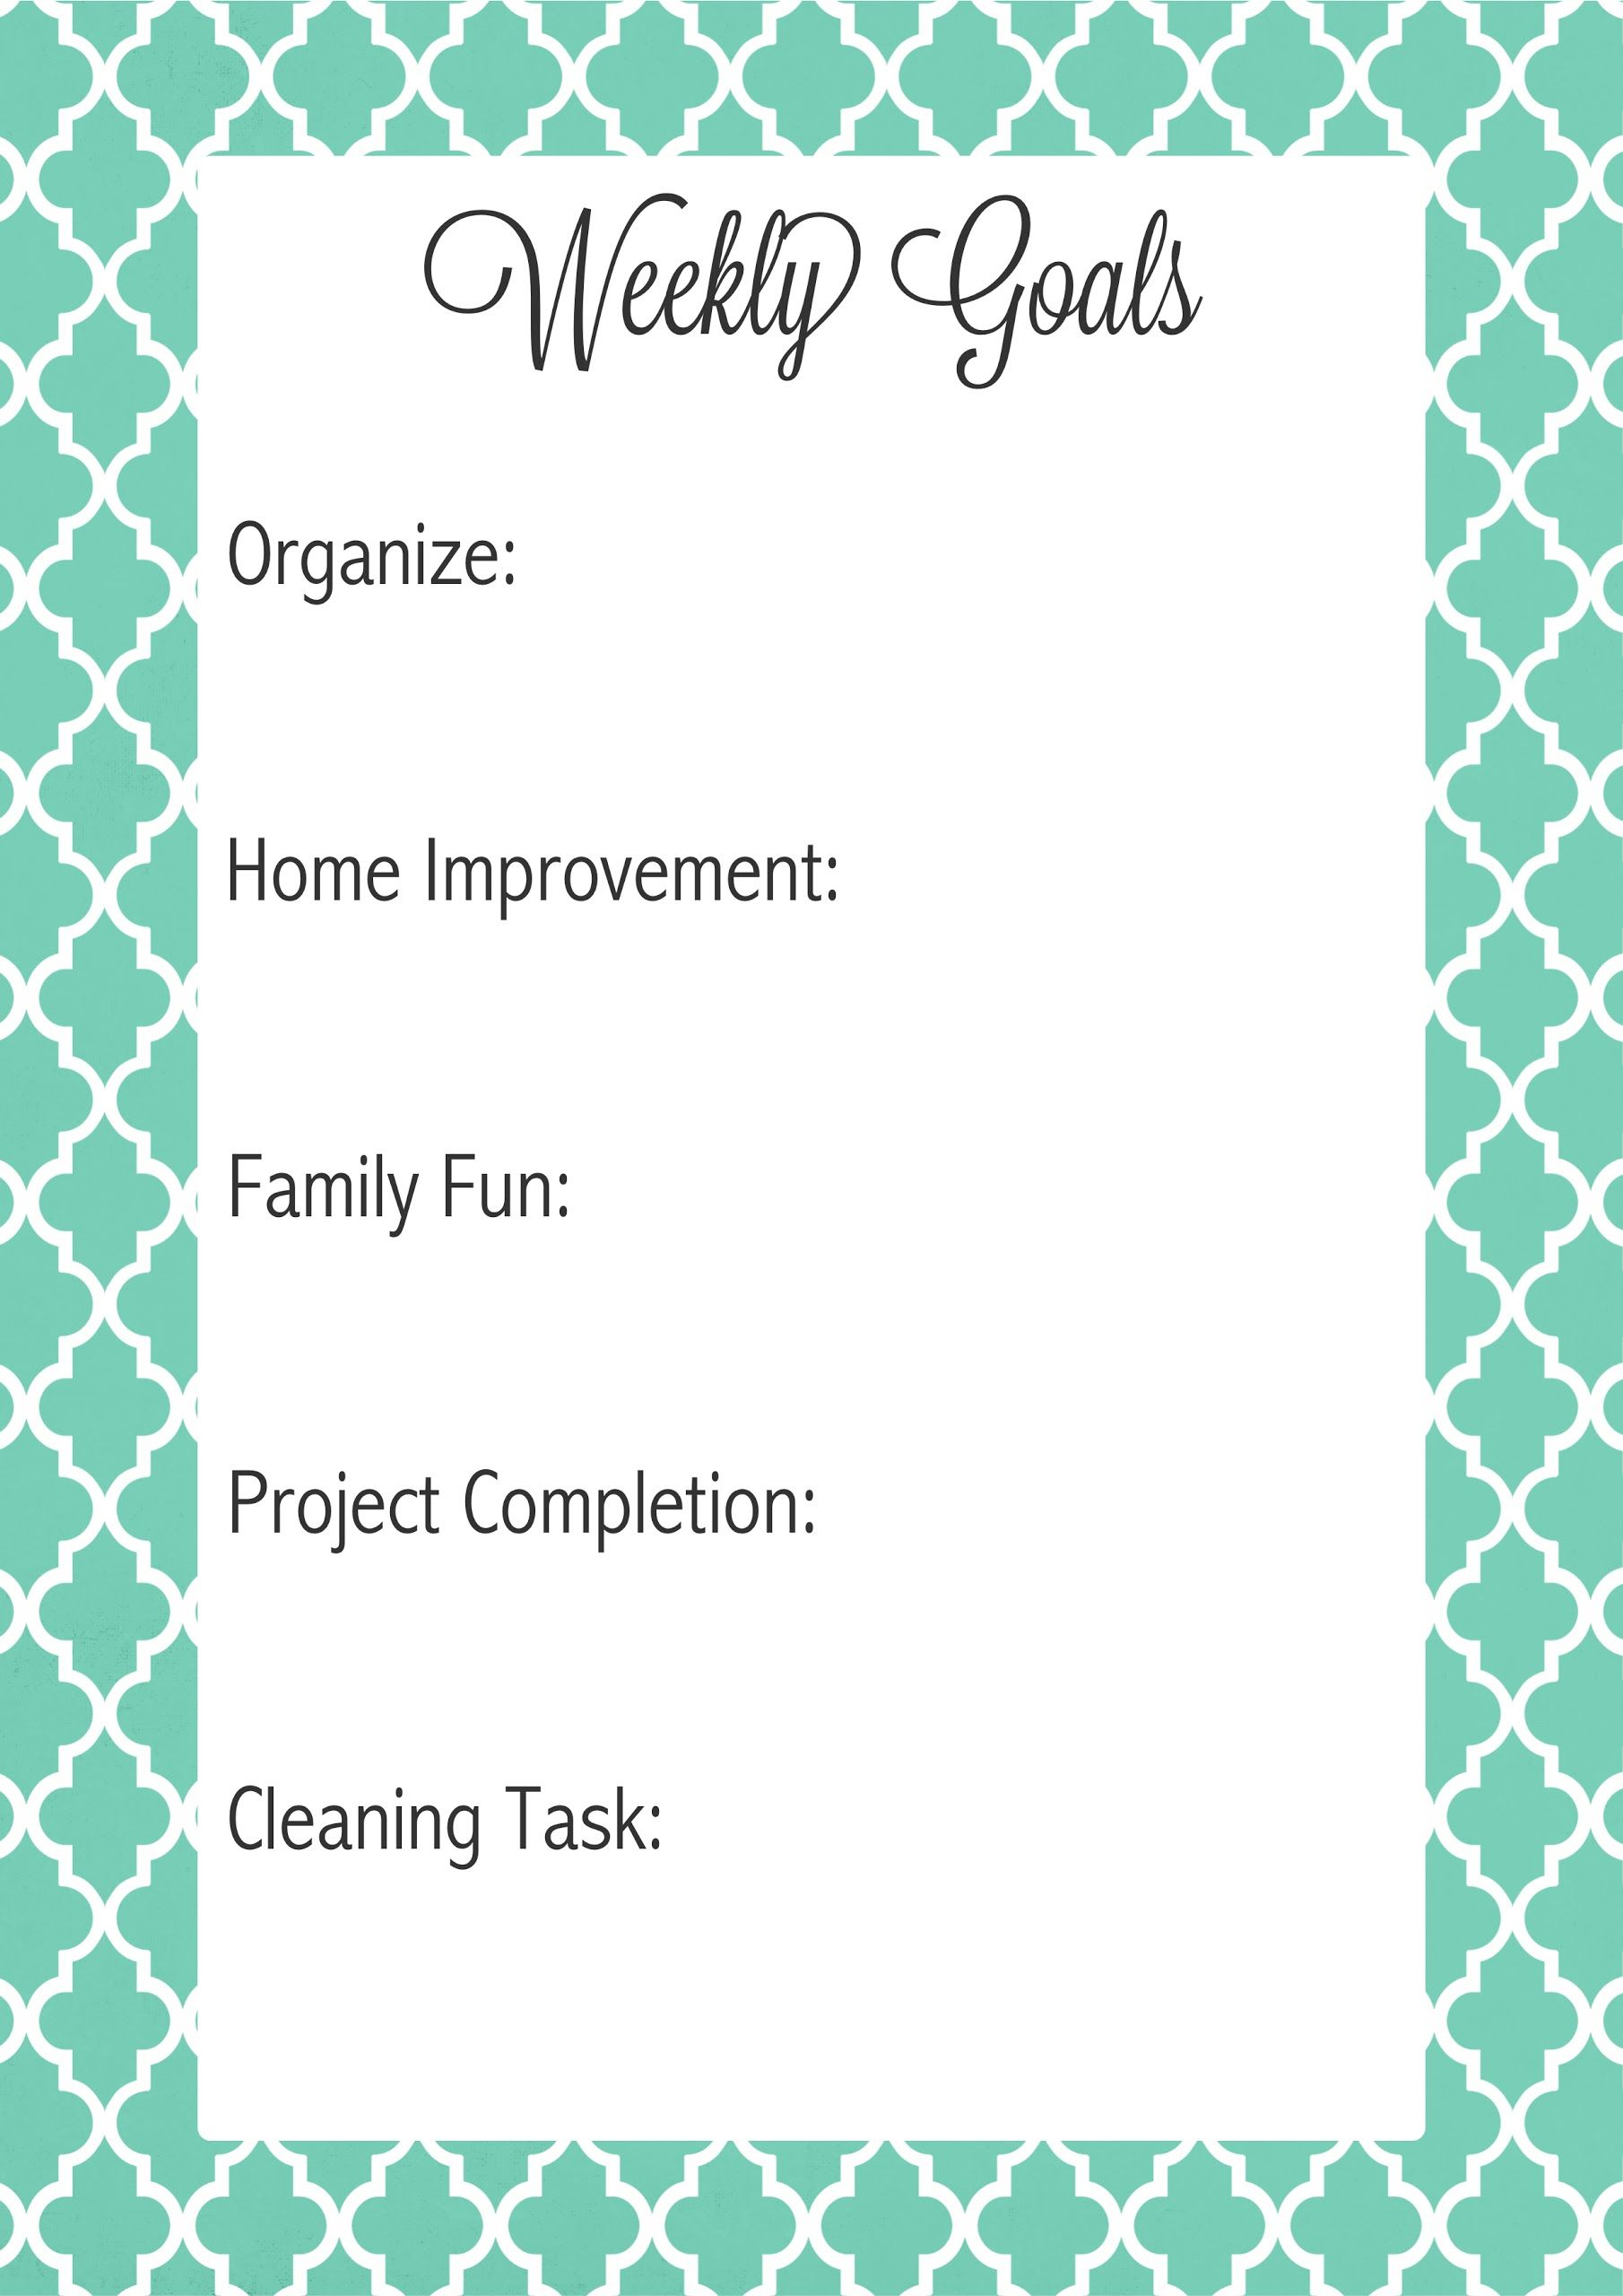 Pin by Kelly Draves on Storage & Organizing Weekly goals